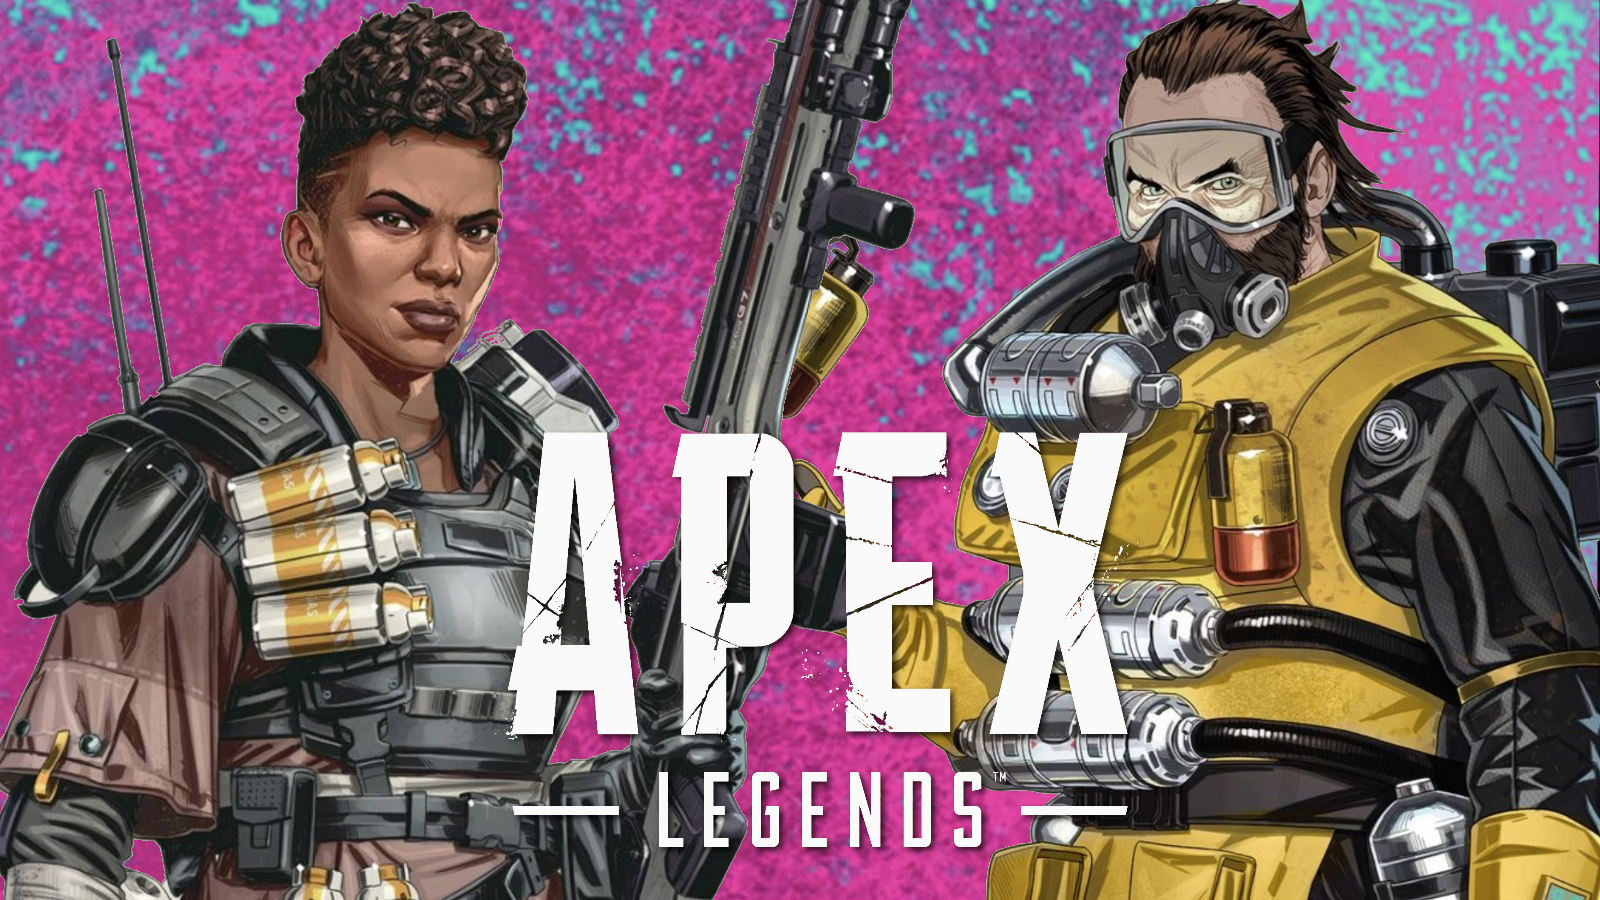 Bangalore and Caustic in Apex Legends pink background